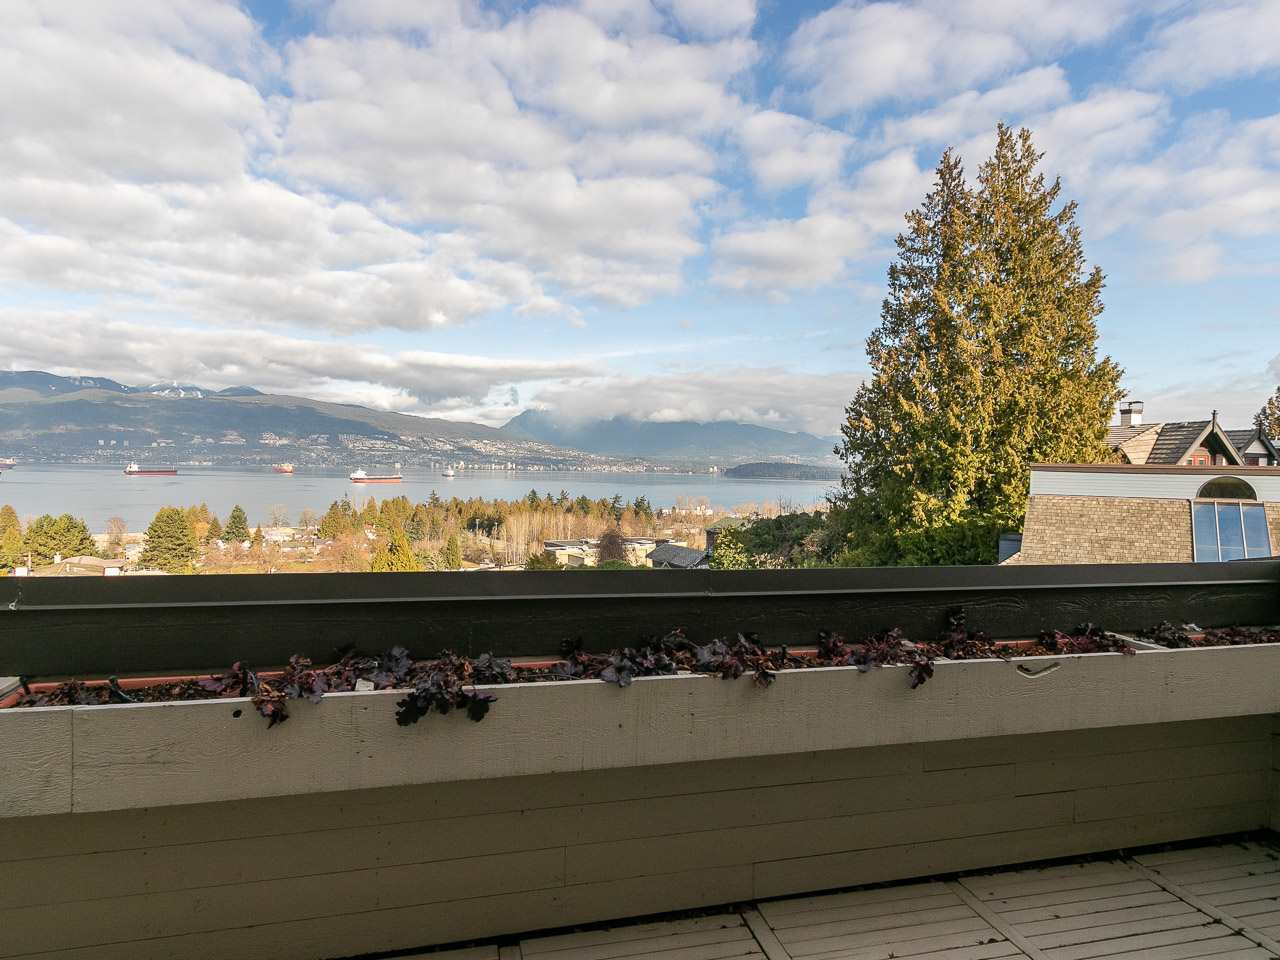 Photo 15: Photos: 2 1980 SASAMAT STREET in Vancouver: Point Grey Townhouse for sale (Vancouver West)  : MLS®# R2357115